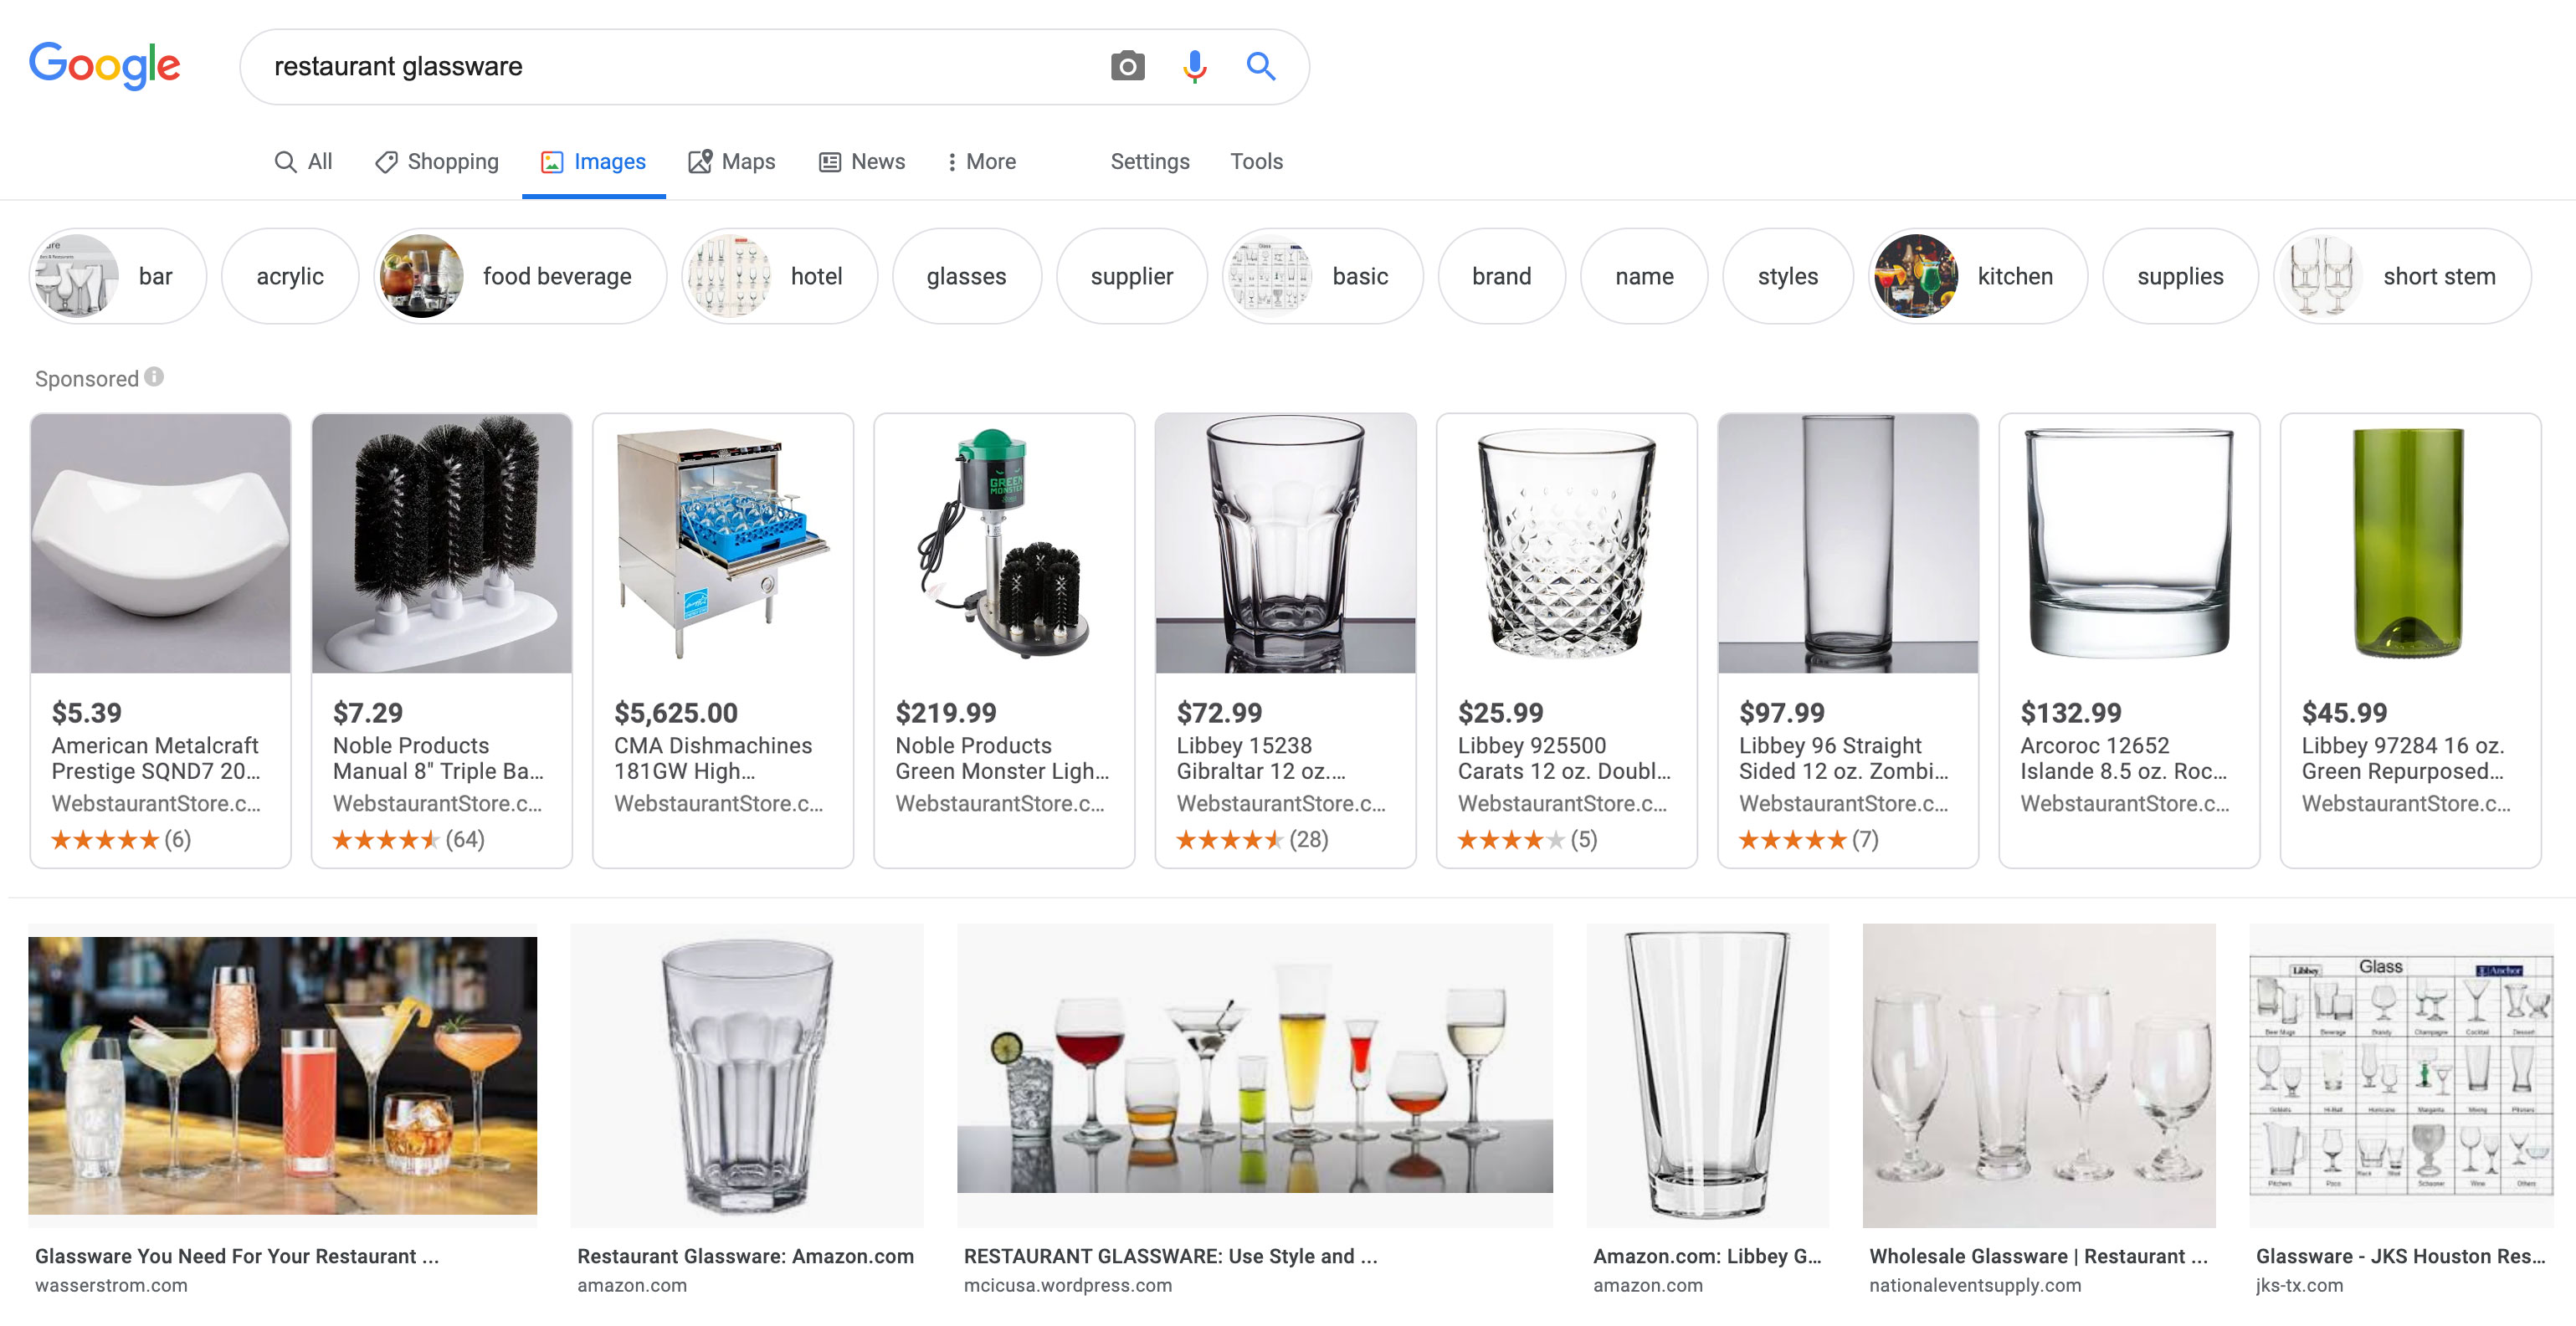 Screenshot-of-Google-Image-Search-for-Restaurant-Glassware